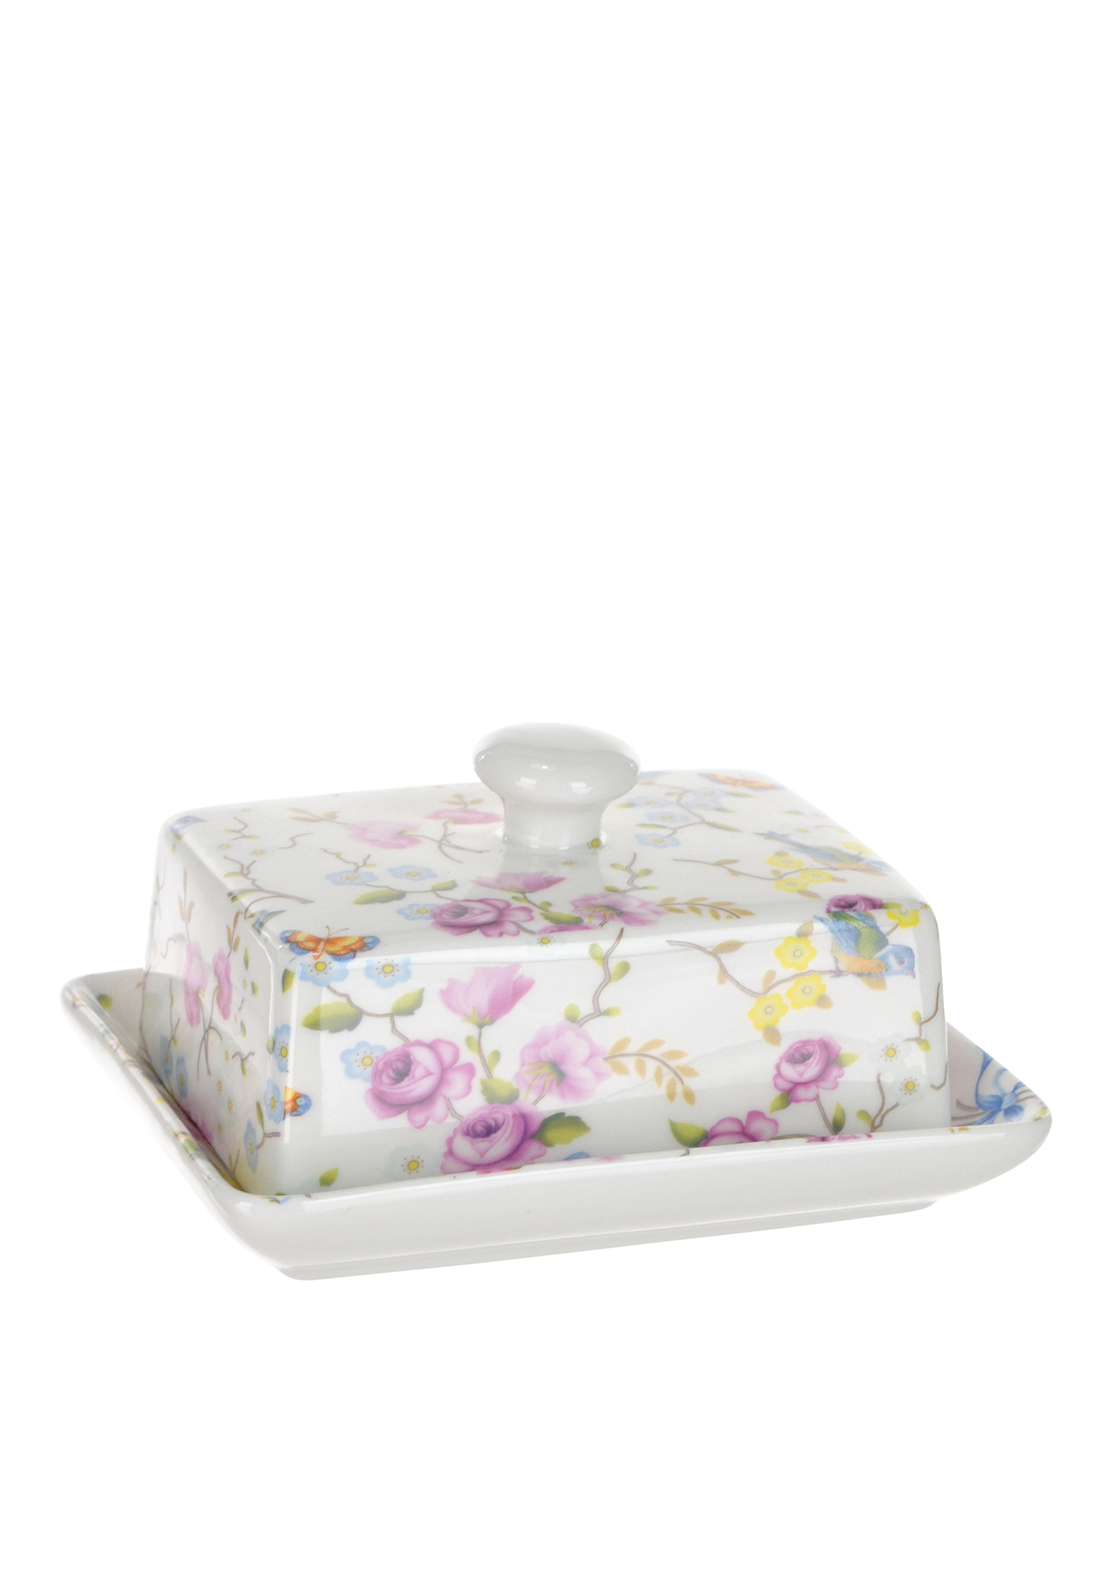 Shannon Bridge Ireland Bird Blossom Butter Dish, White/Multi Floral Print